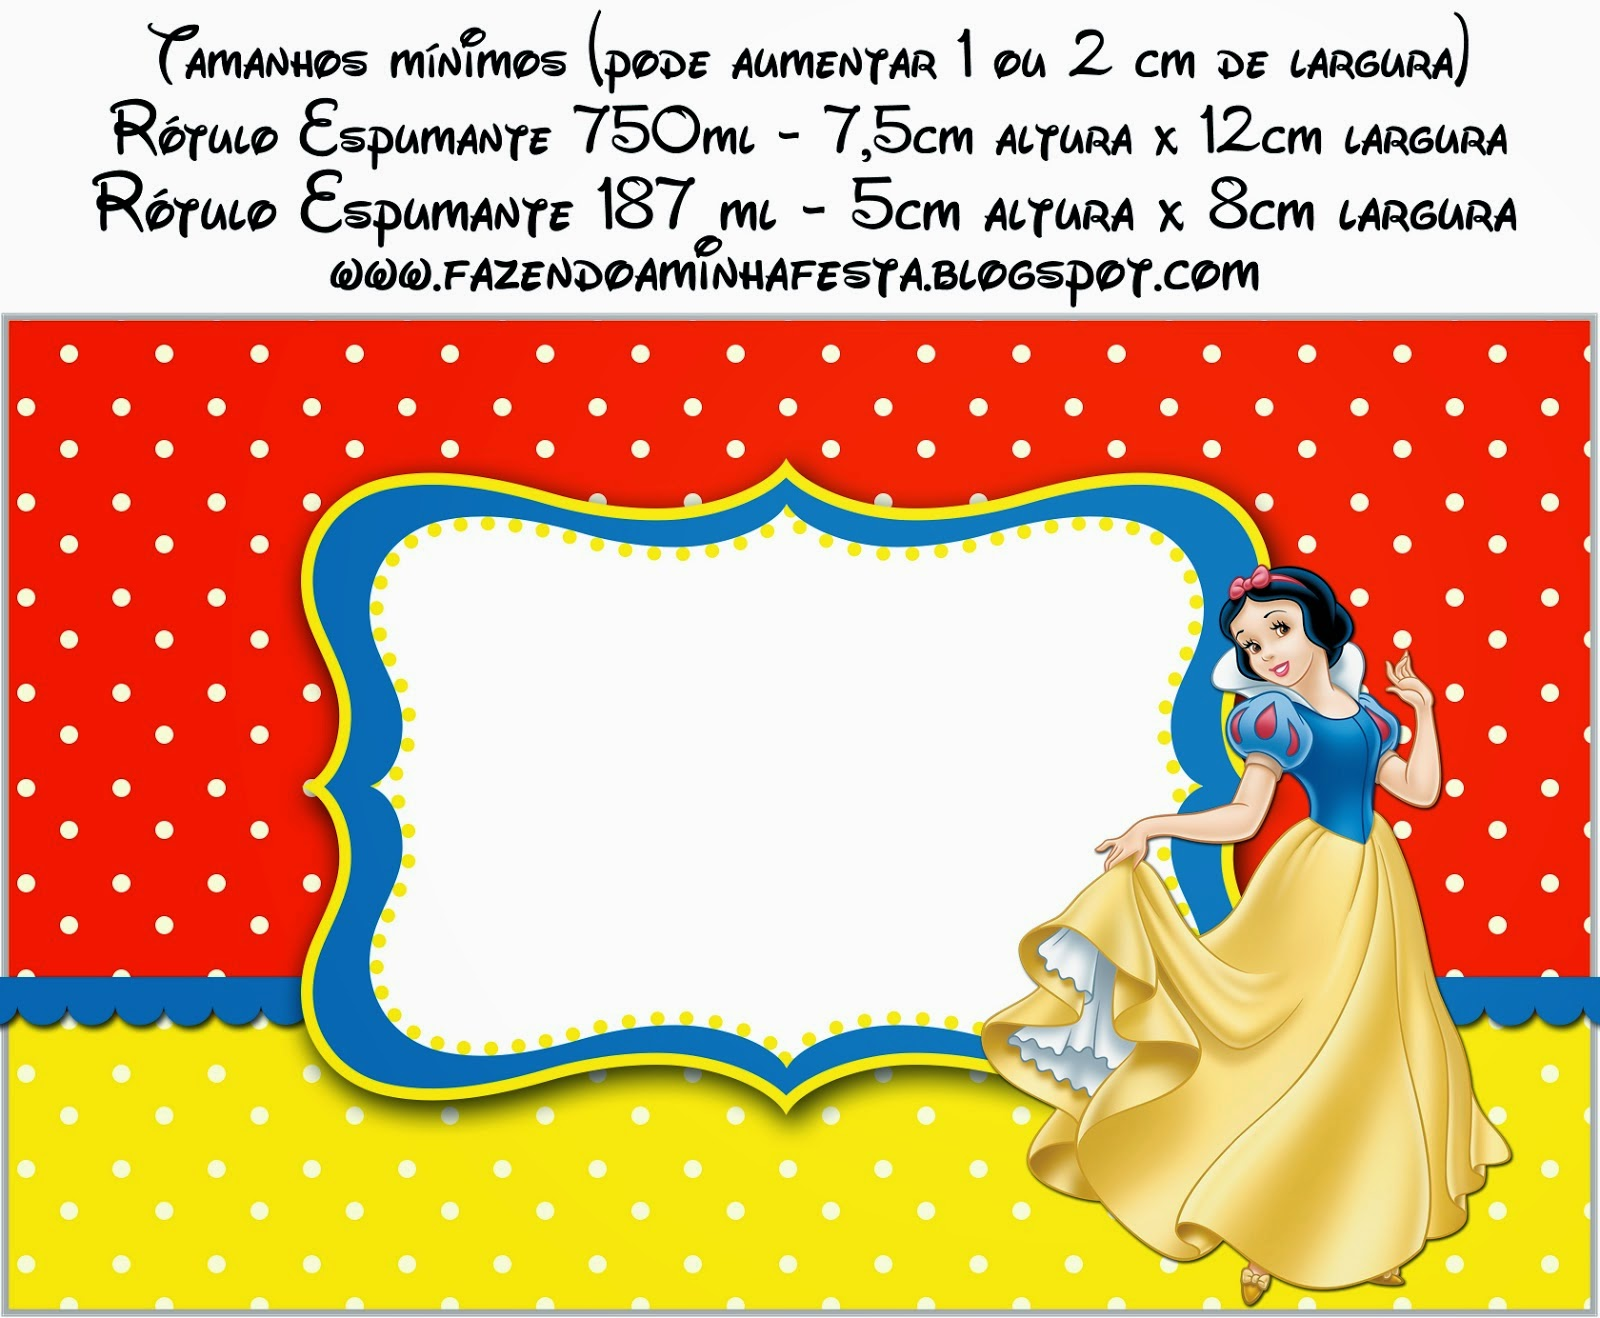 Snow White: Free Printable Candy Bar Labels. | Oh My Fiesta! in english